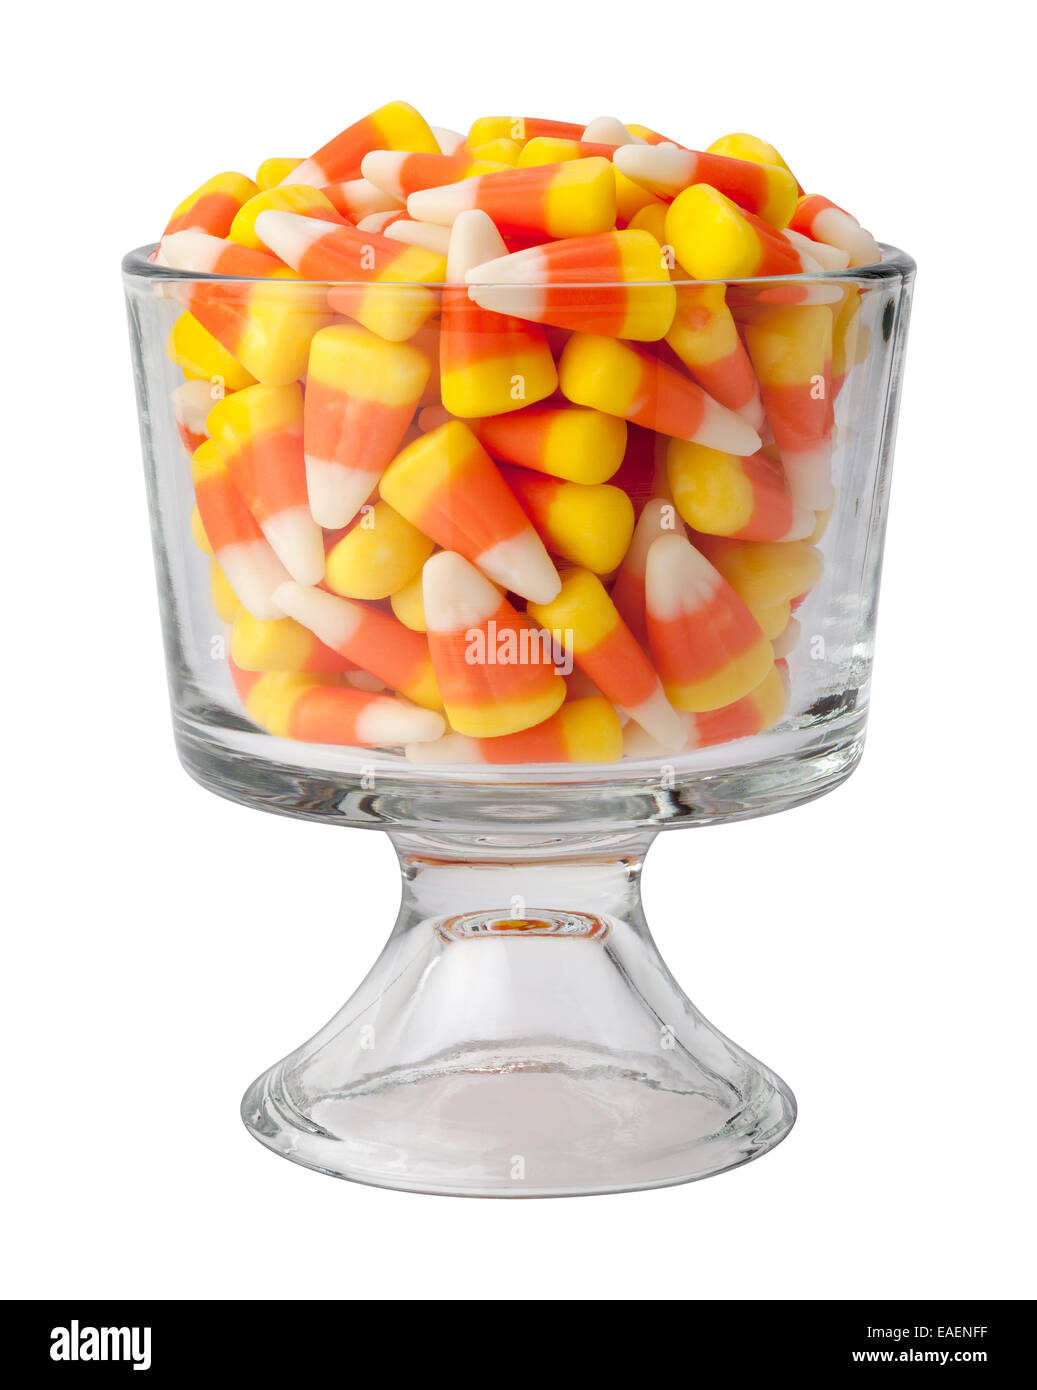 Candy corn in a dessert glass. - Stock Image